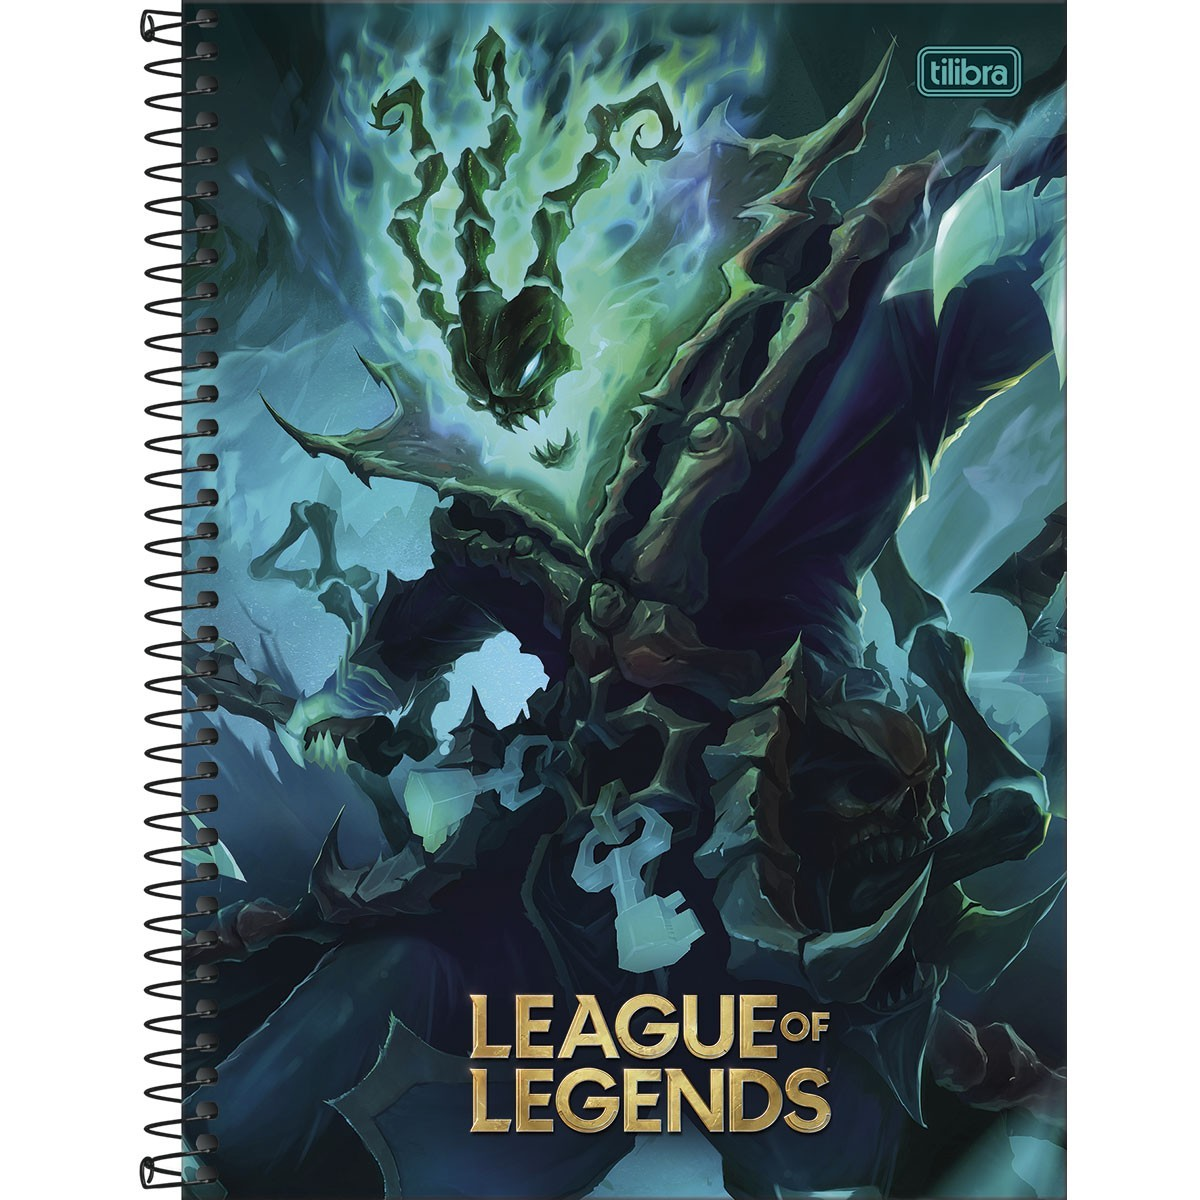 Caderno Espiral Capa Dura Universitário 12 Matérias League of Legends Tresh 240 Folhas